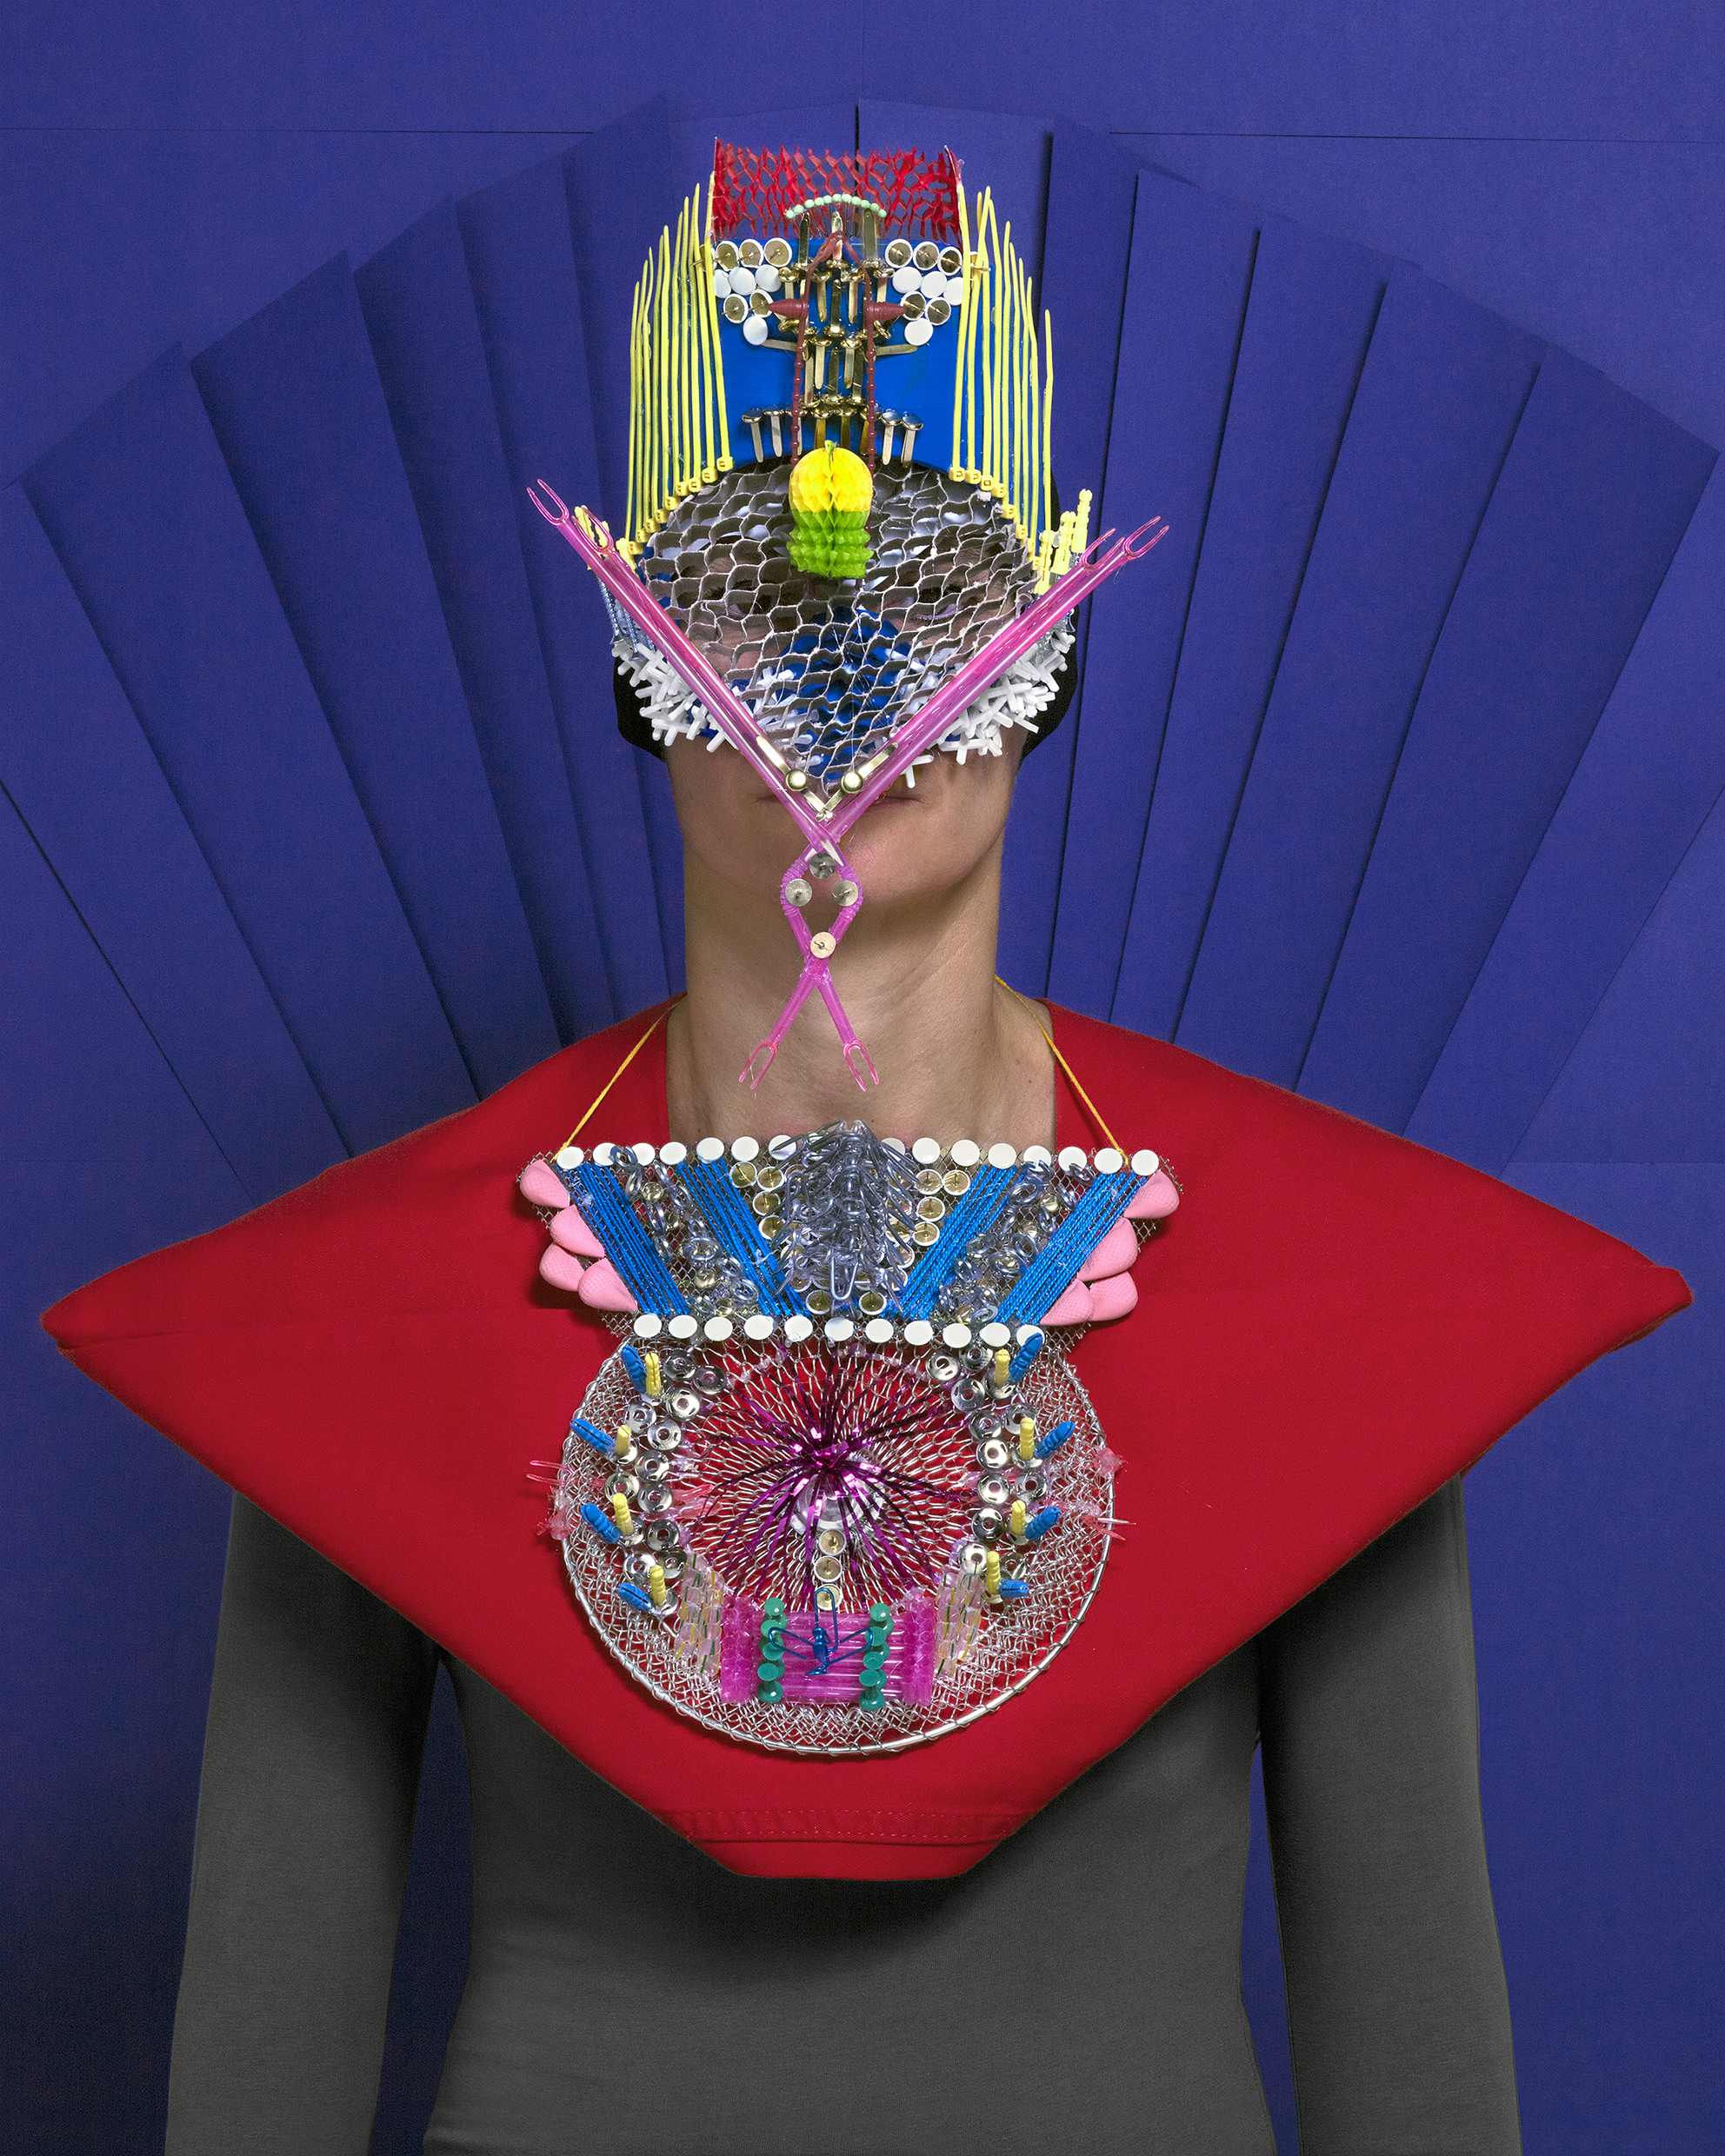 Armure #5, from the series Armure, 2013